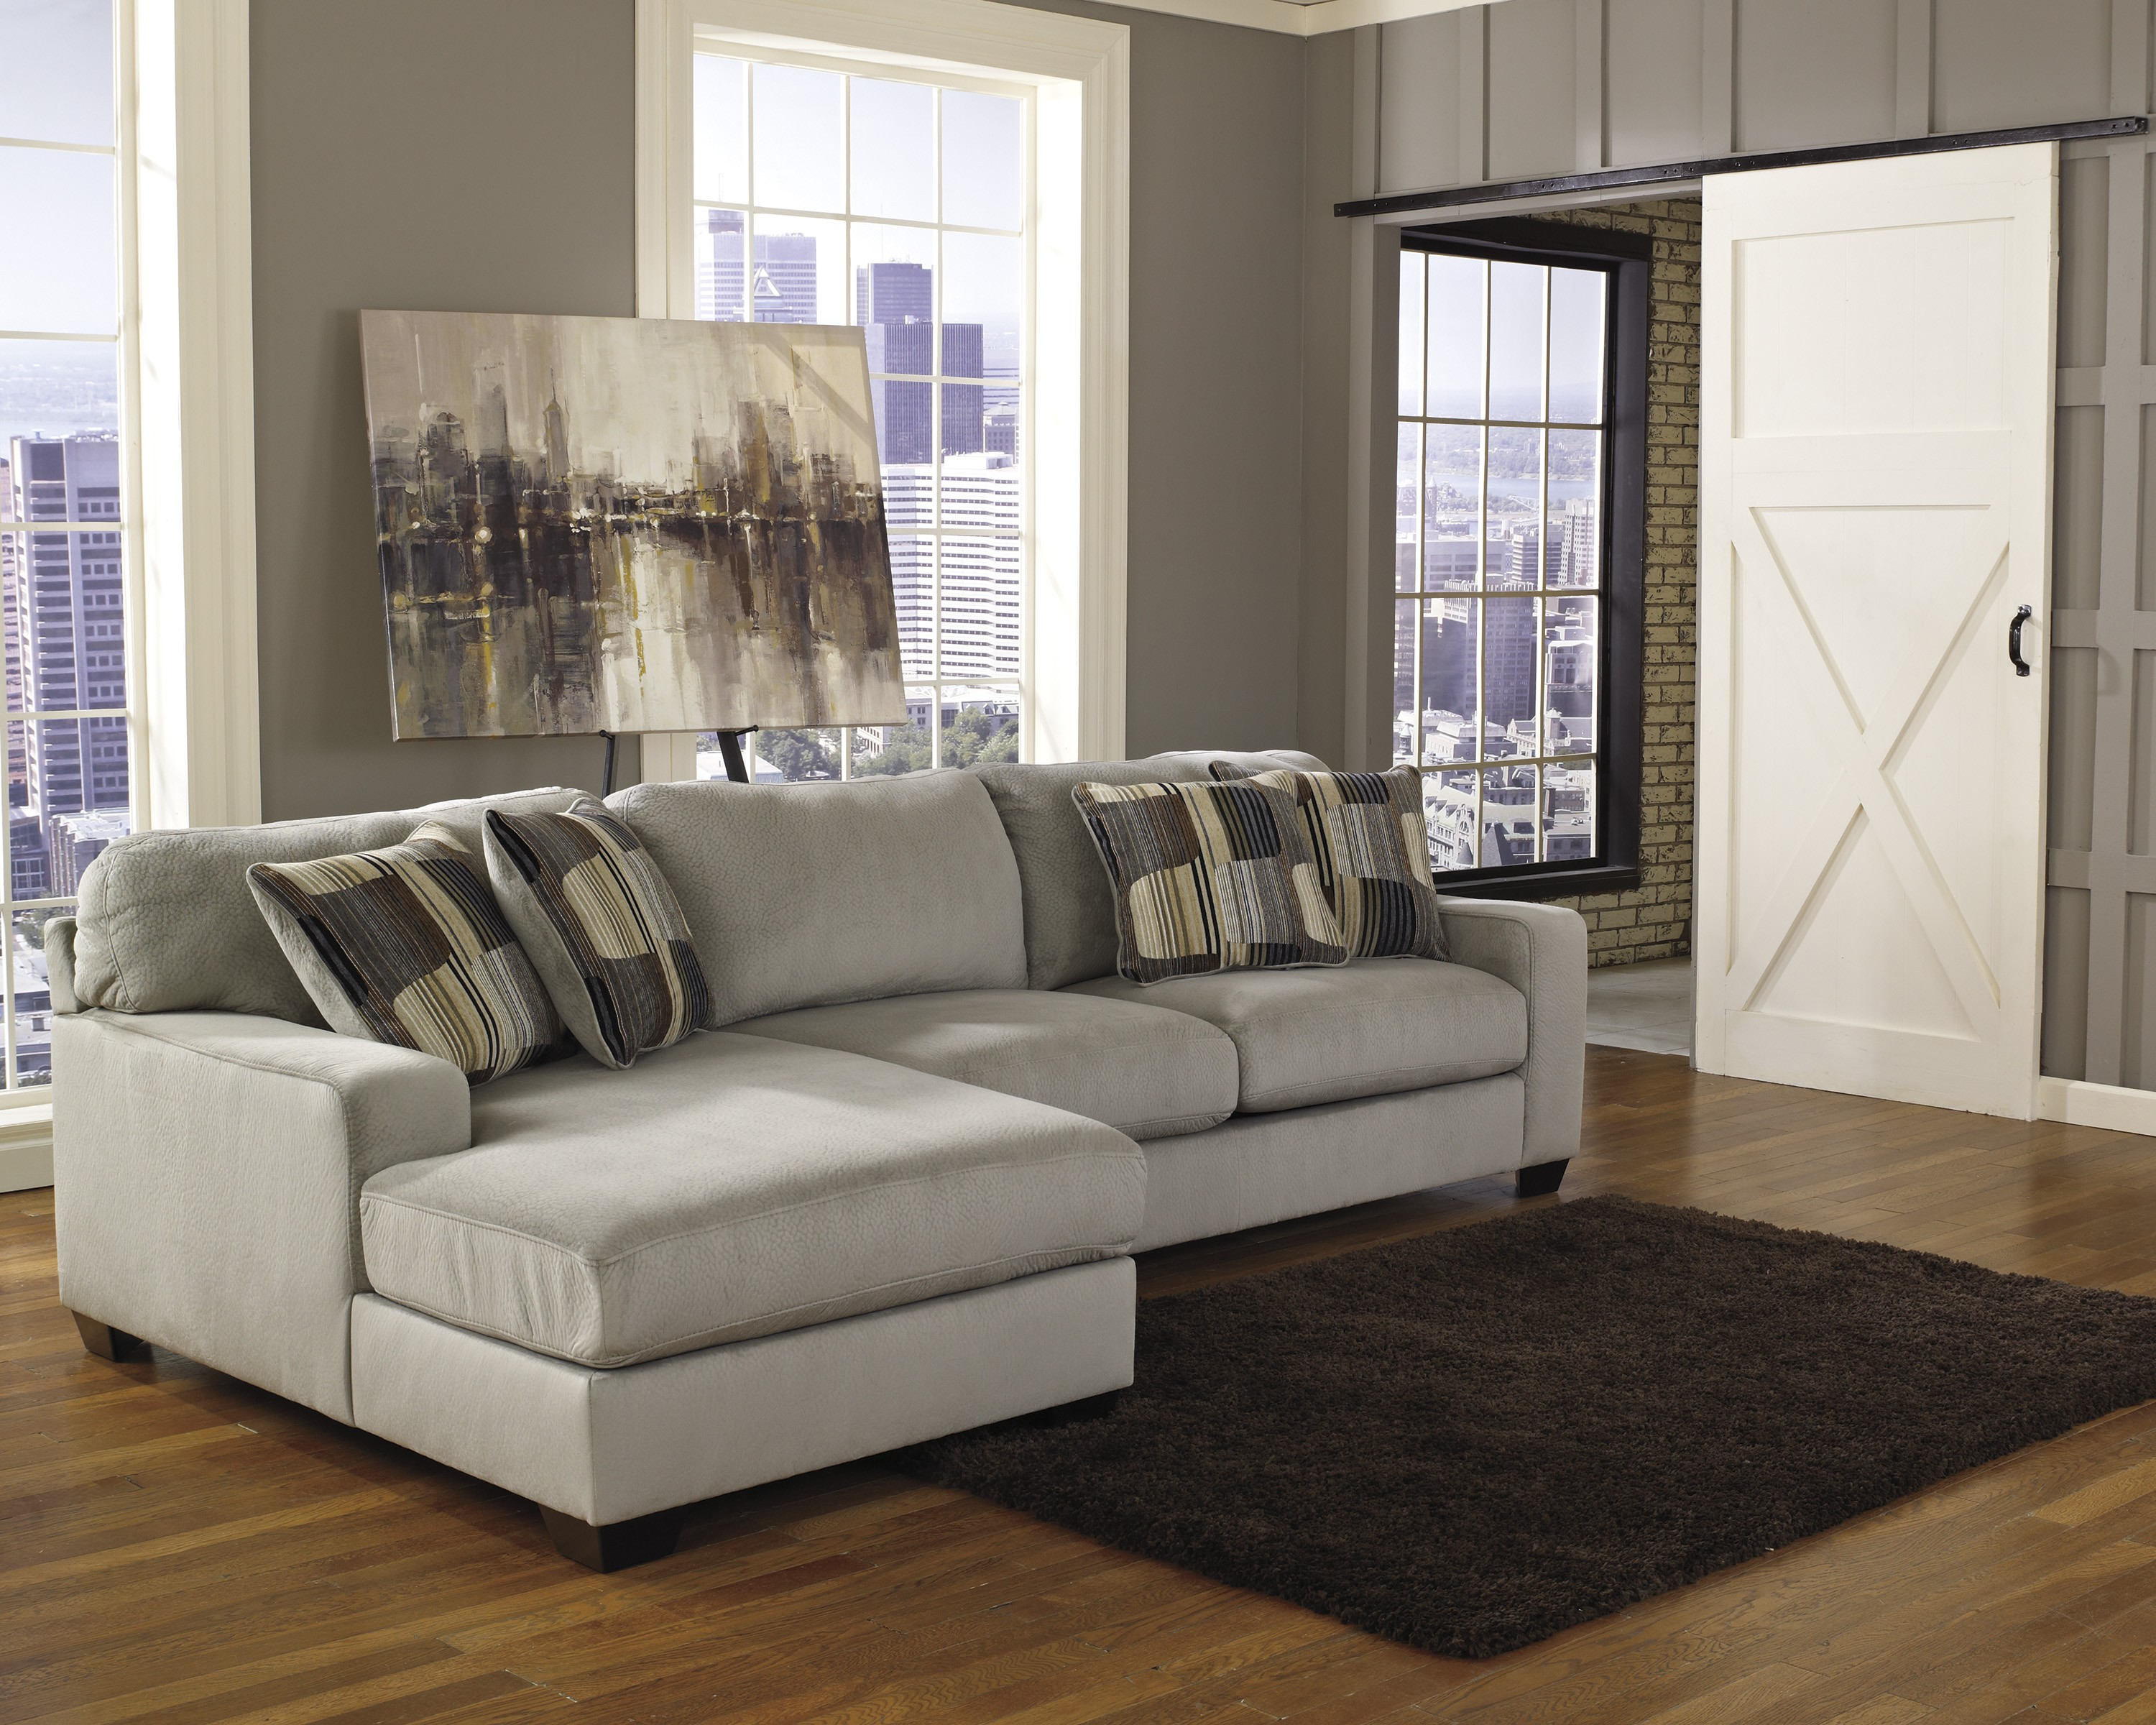 sectional in small living room. grey sectional sleeper sofa on wooden floor plus dark brown carpet matched  with wall Decorating Comfortable Sectional Sleeper Sofa For Living Room